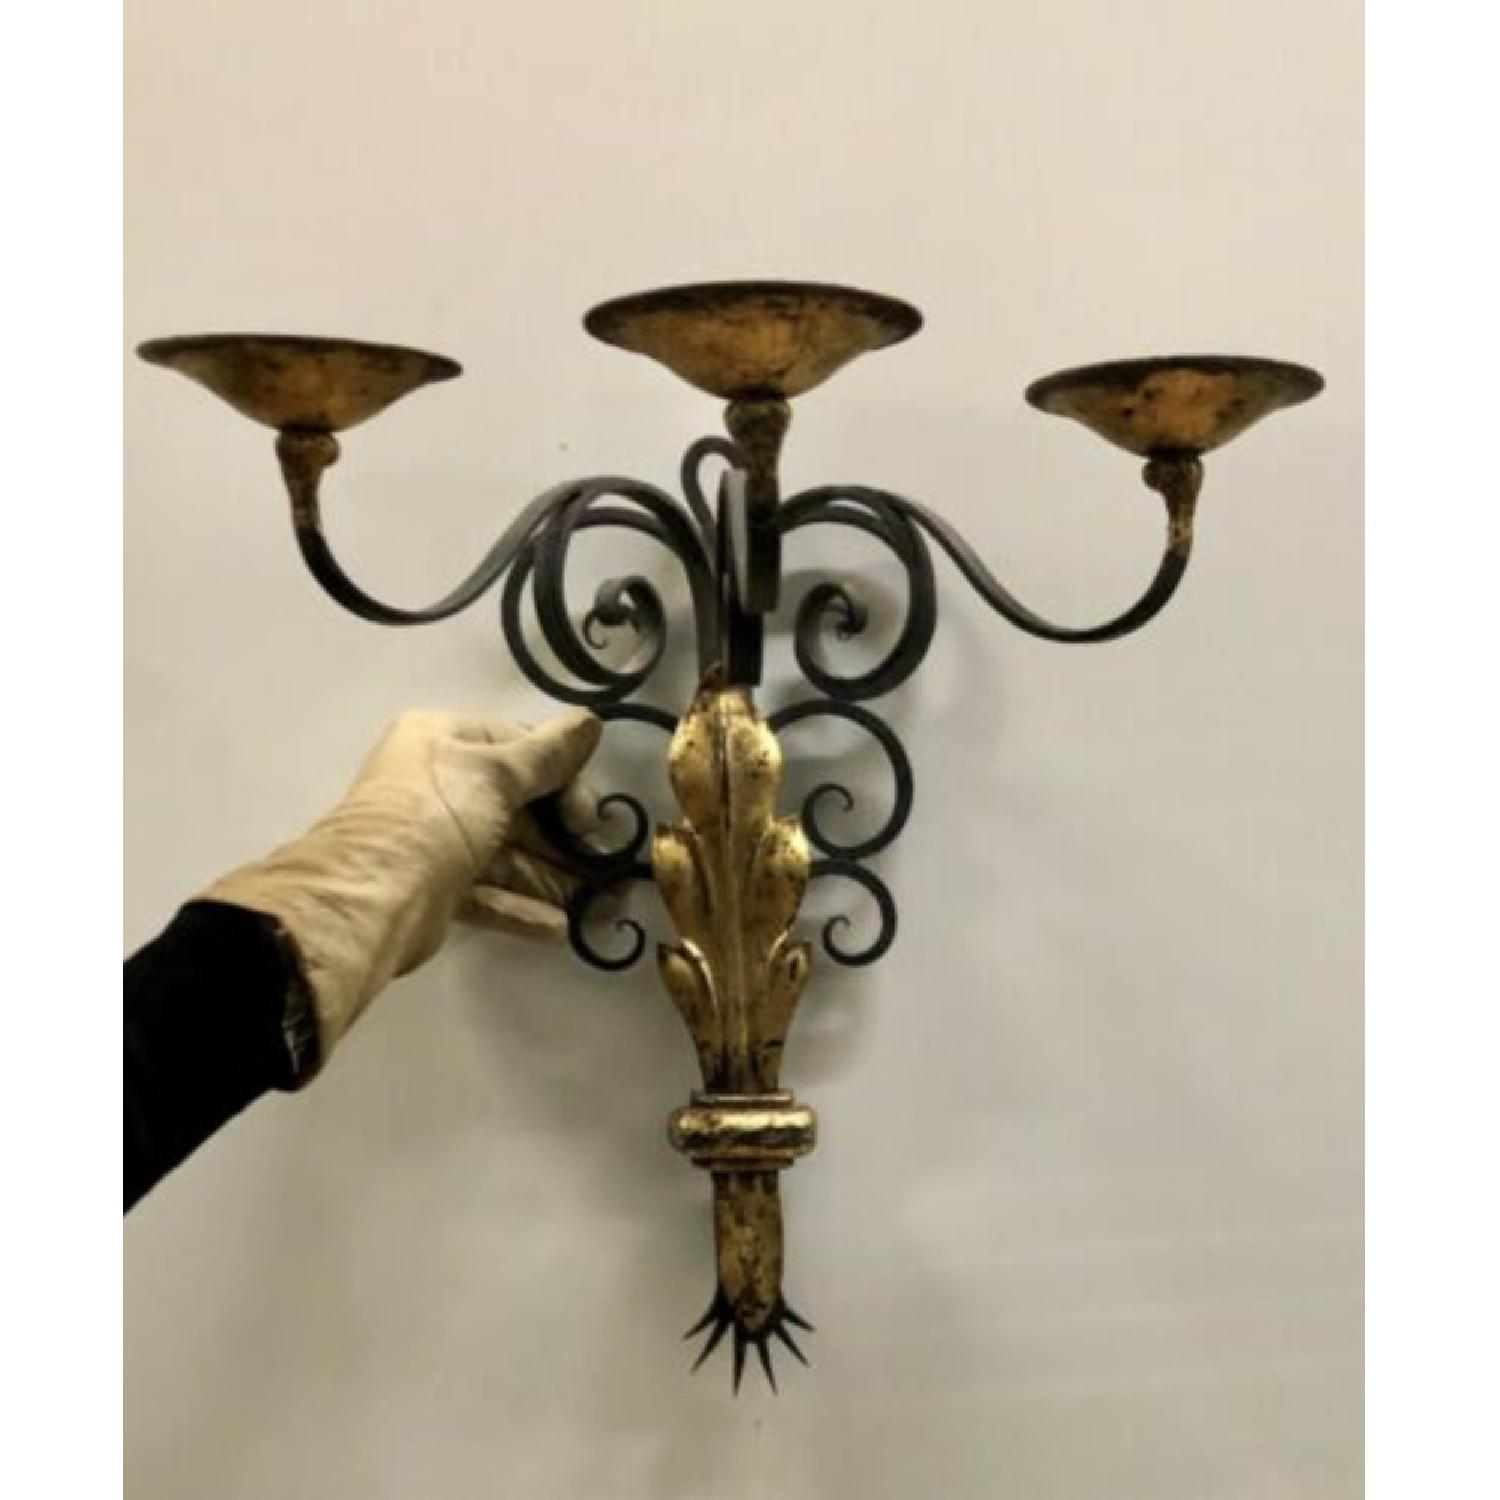 1940's French Black and Gold leaf Wrought iron Sconces - image-4